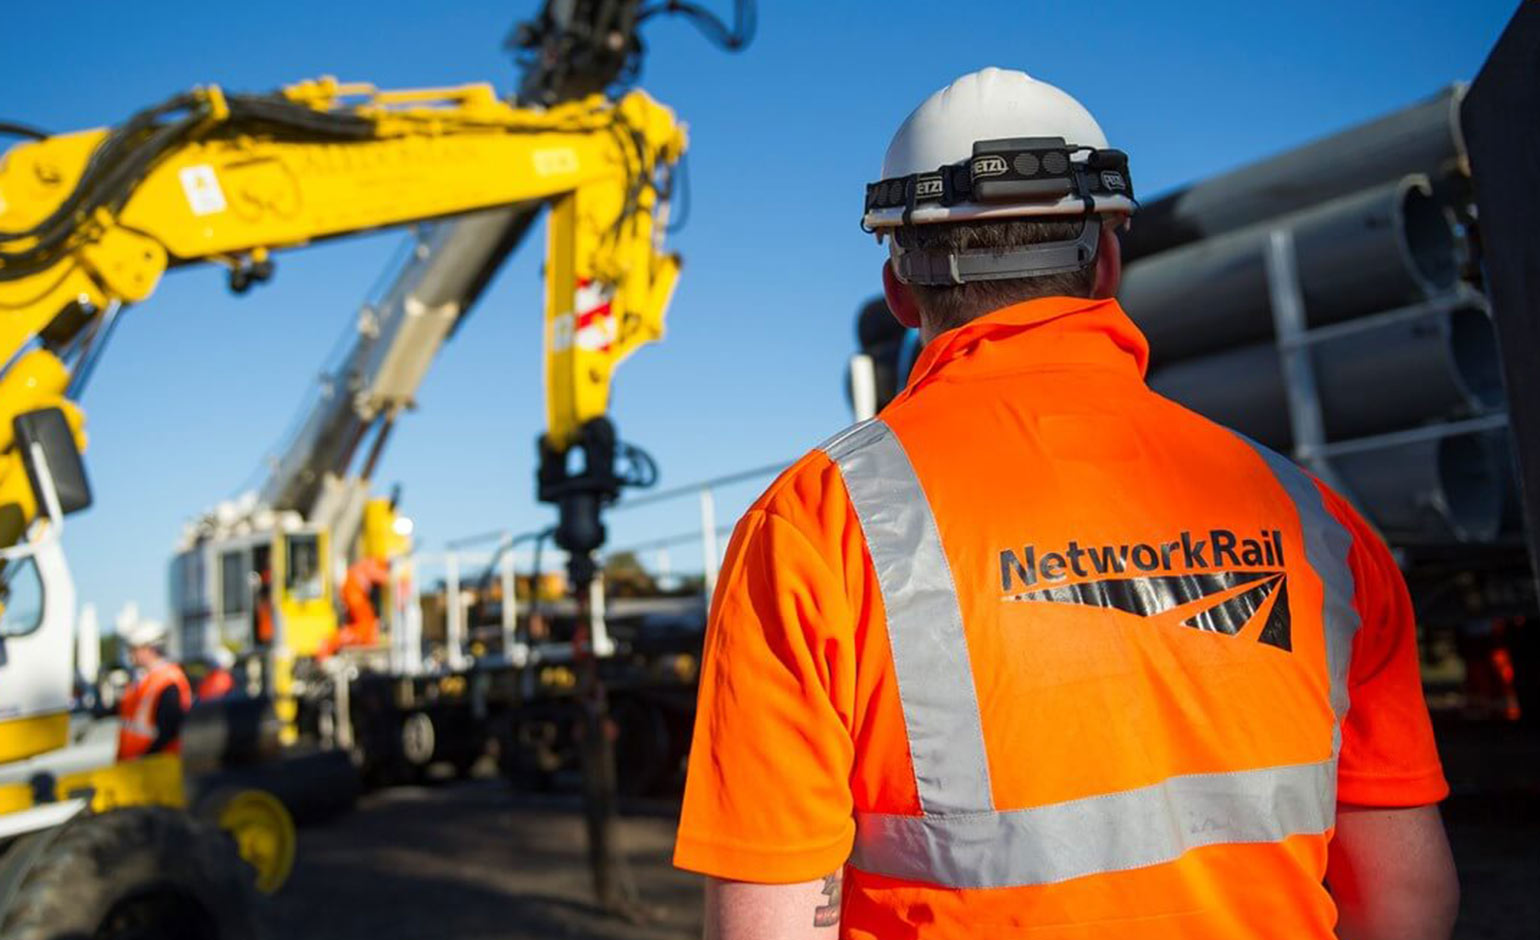 Network Rail's planned maintenance yard may need permission after all